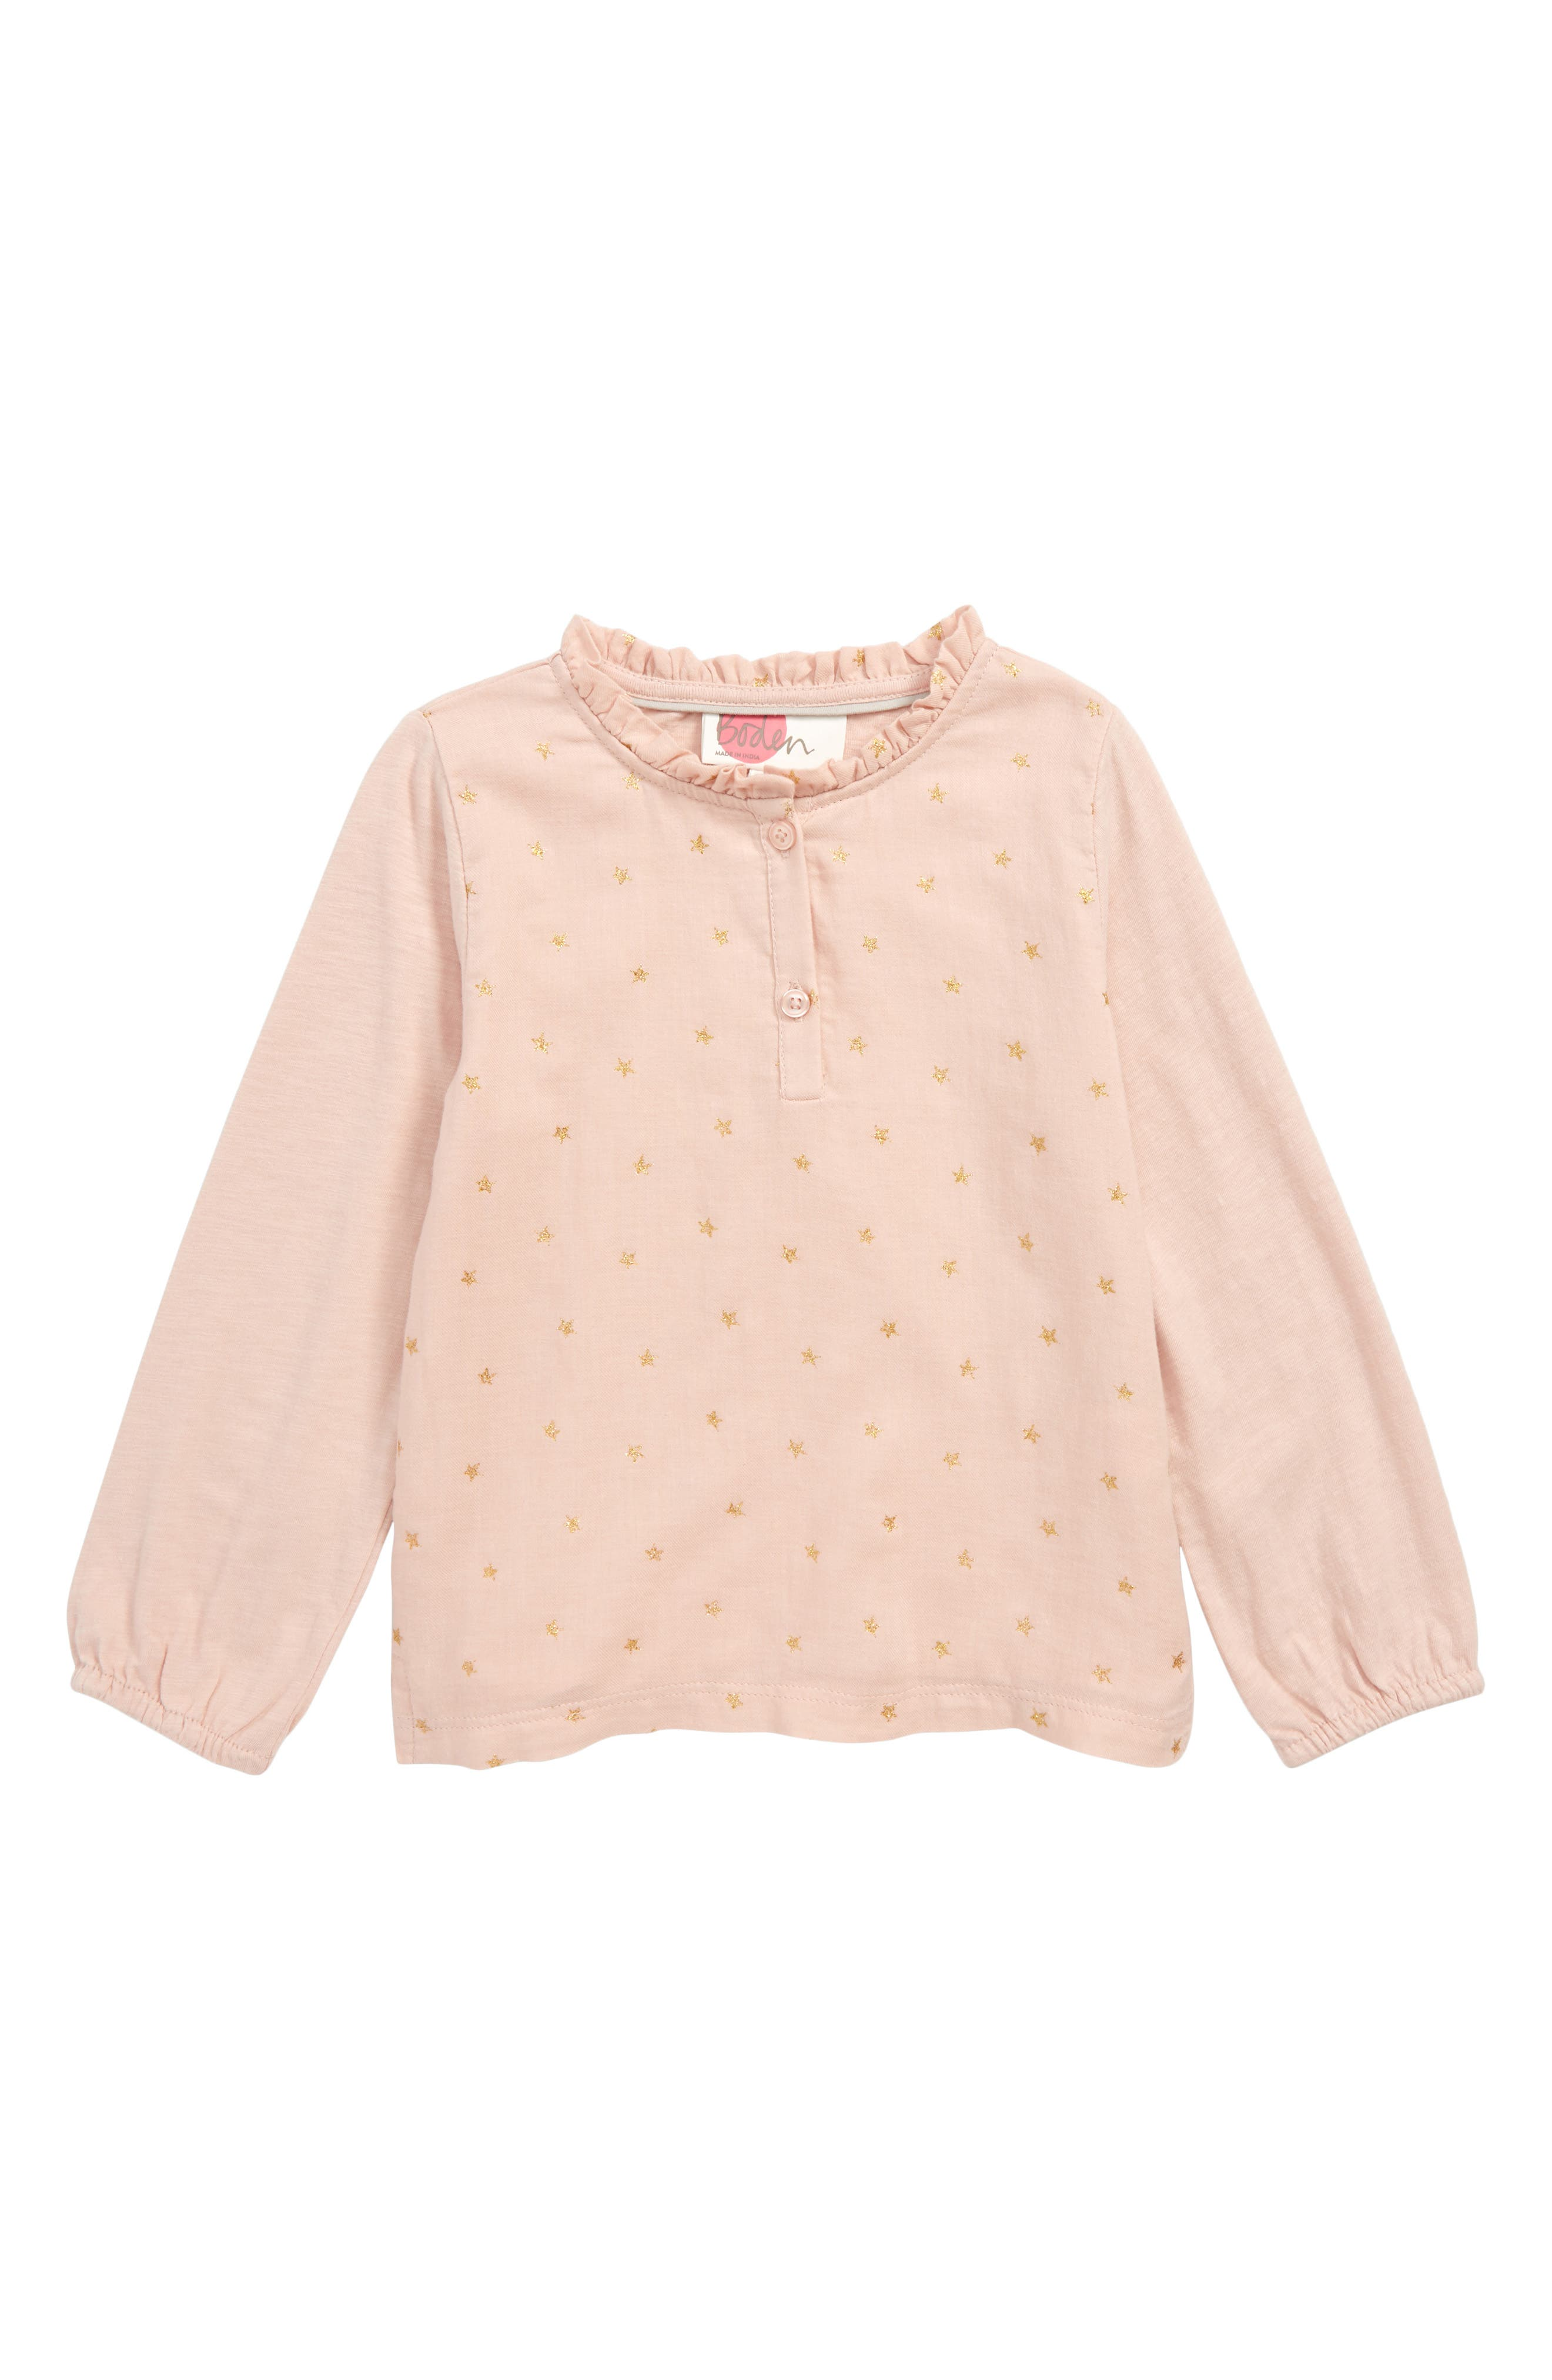 Ruffle Top,                         Main,                         color, PINK PROVENCE DUSTY PINK